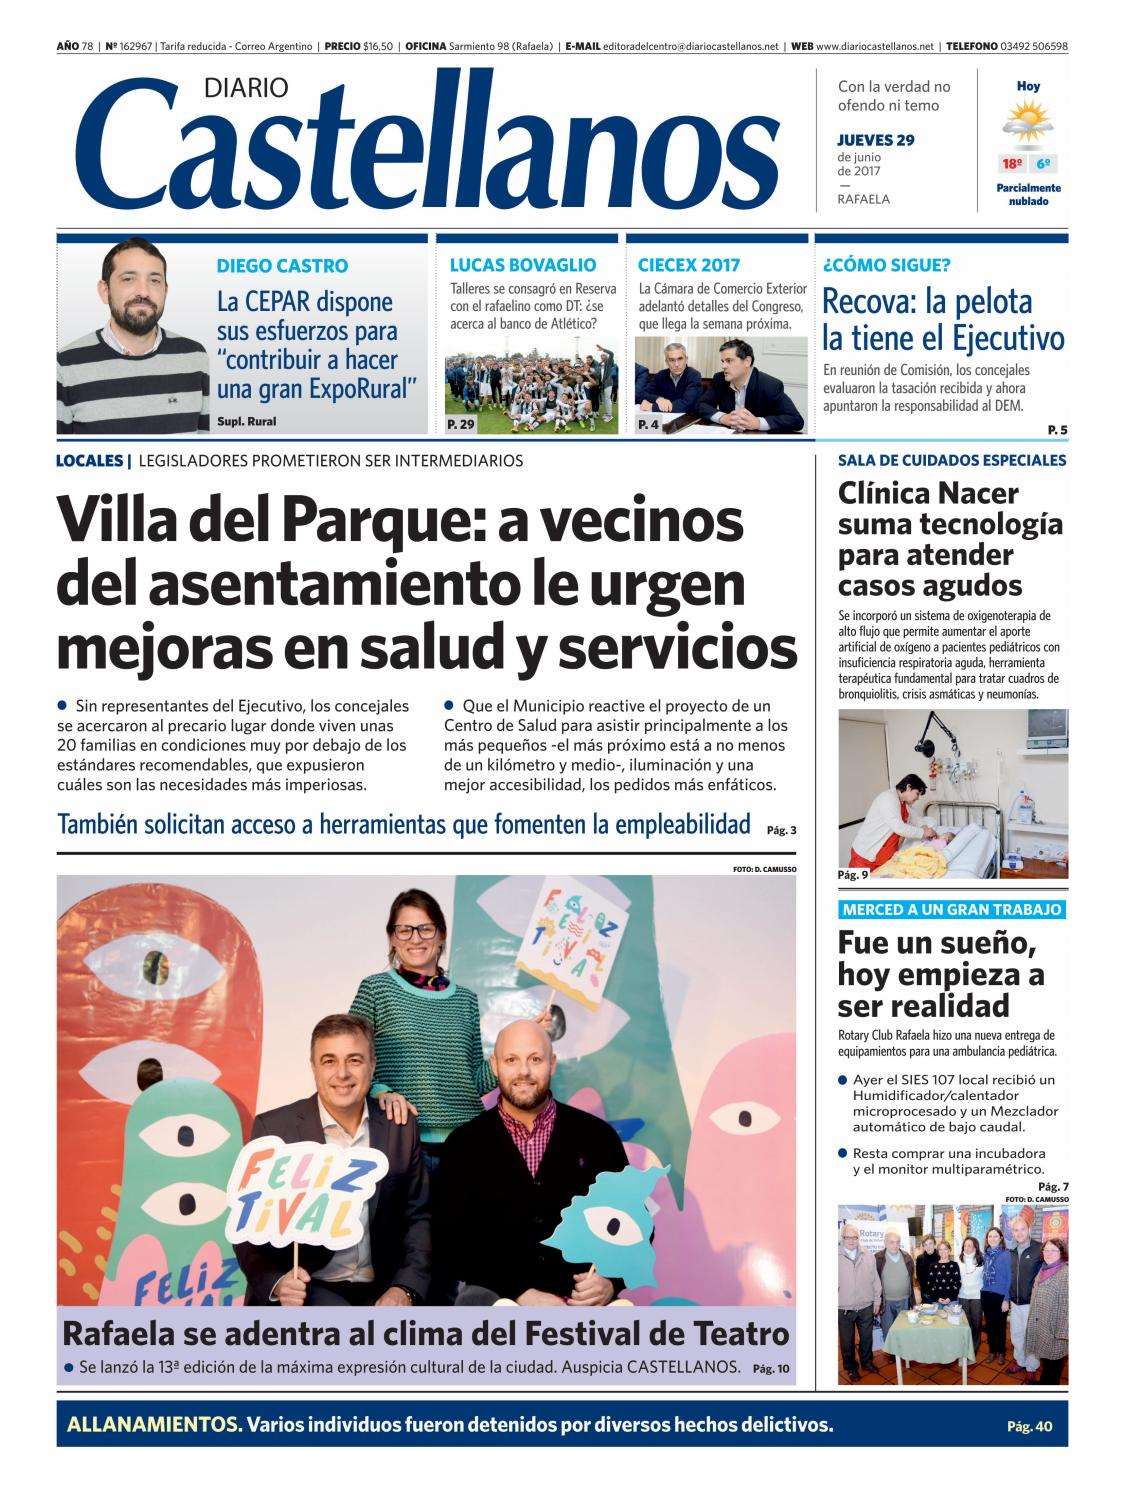 Diario Castellanos 29 06 by Diario Castellanos - issuu